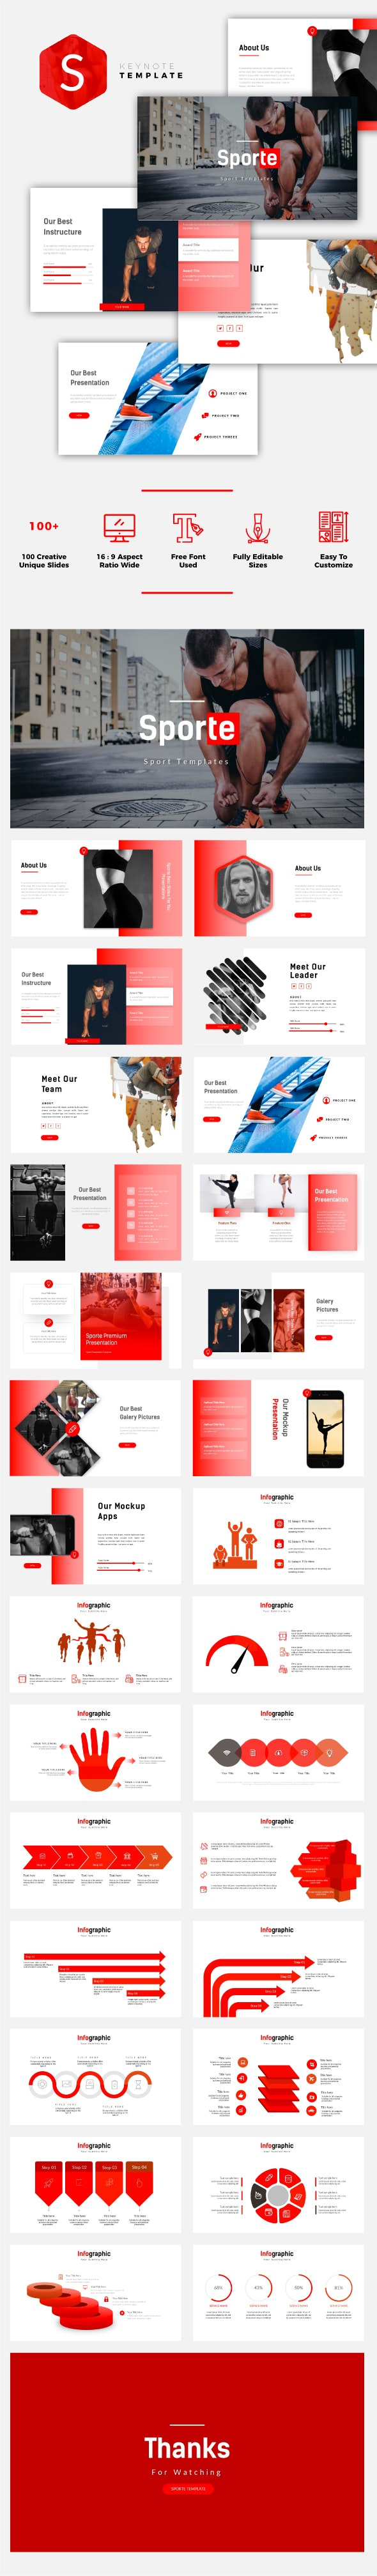 Sporte - Sport Keynote Template - Miscellaneous Keynote Templates